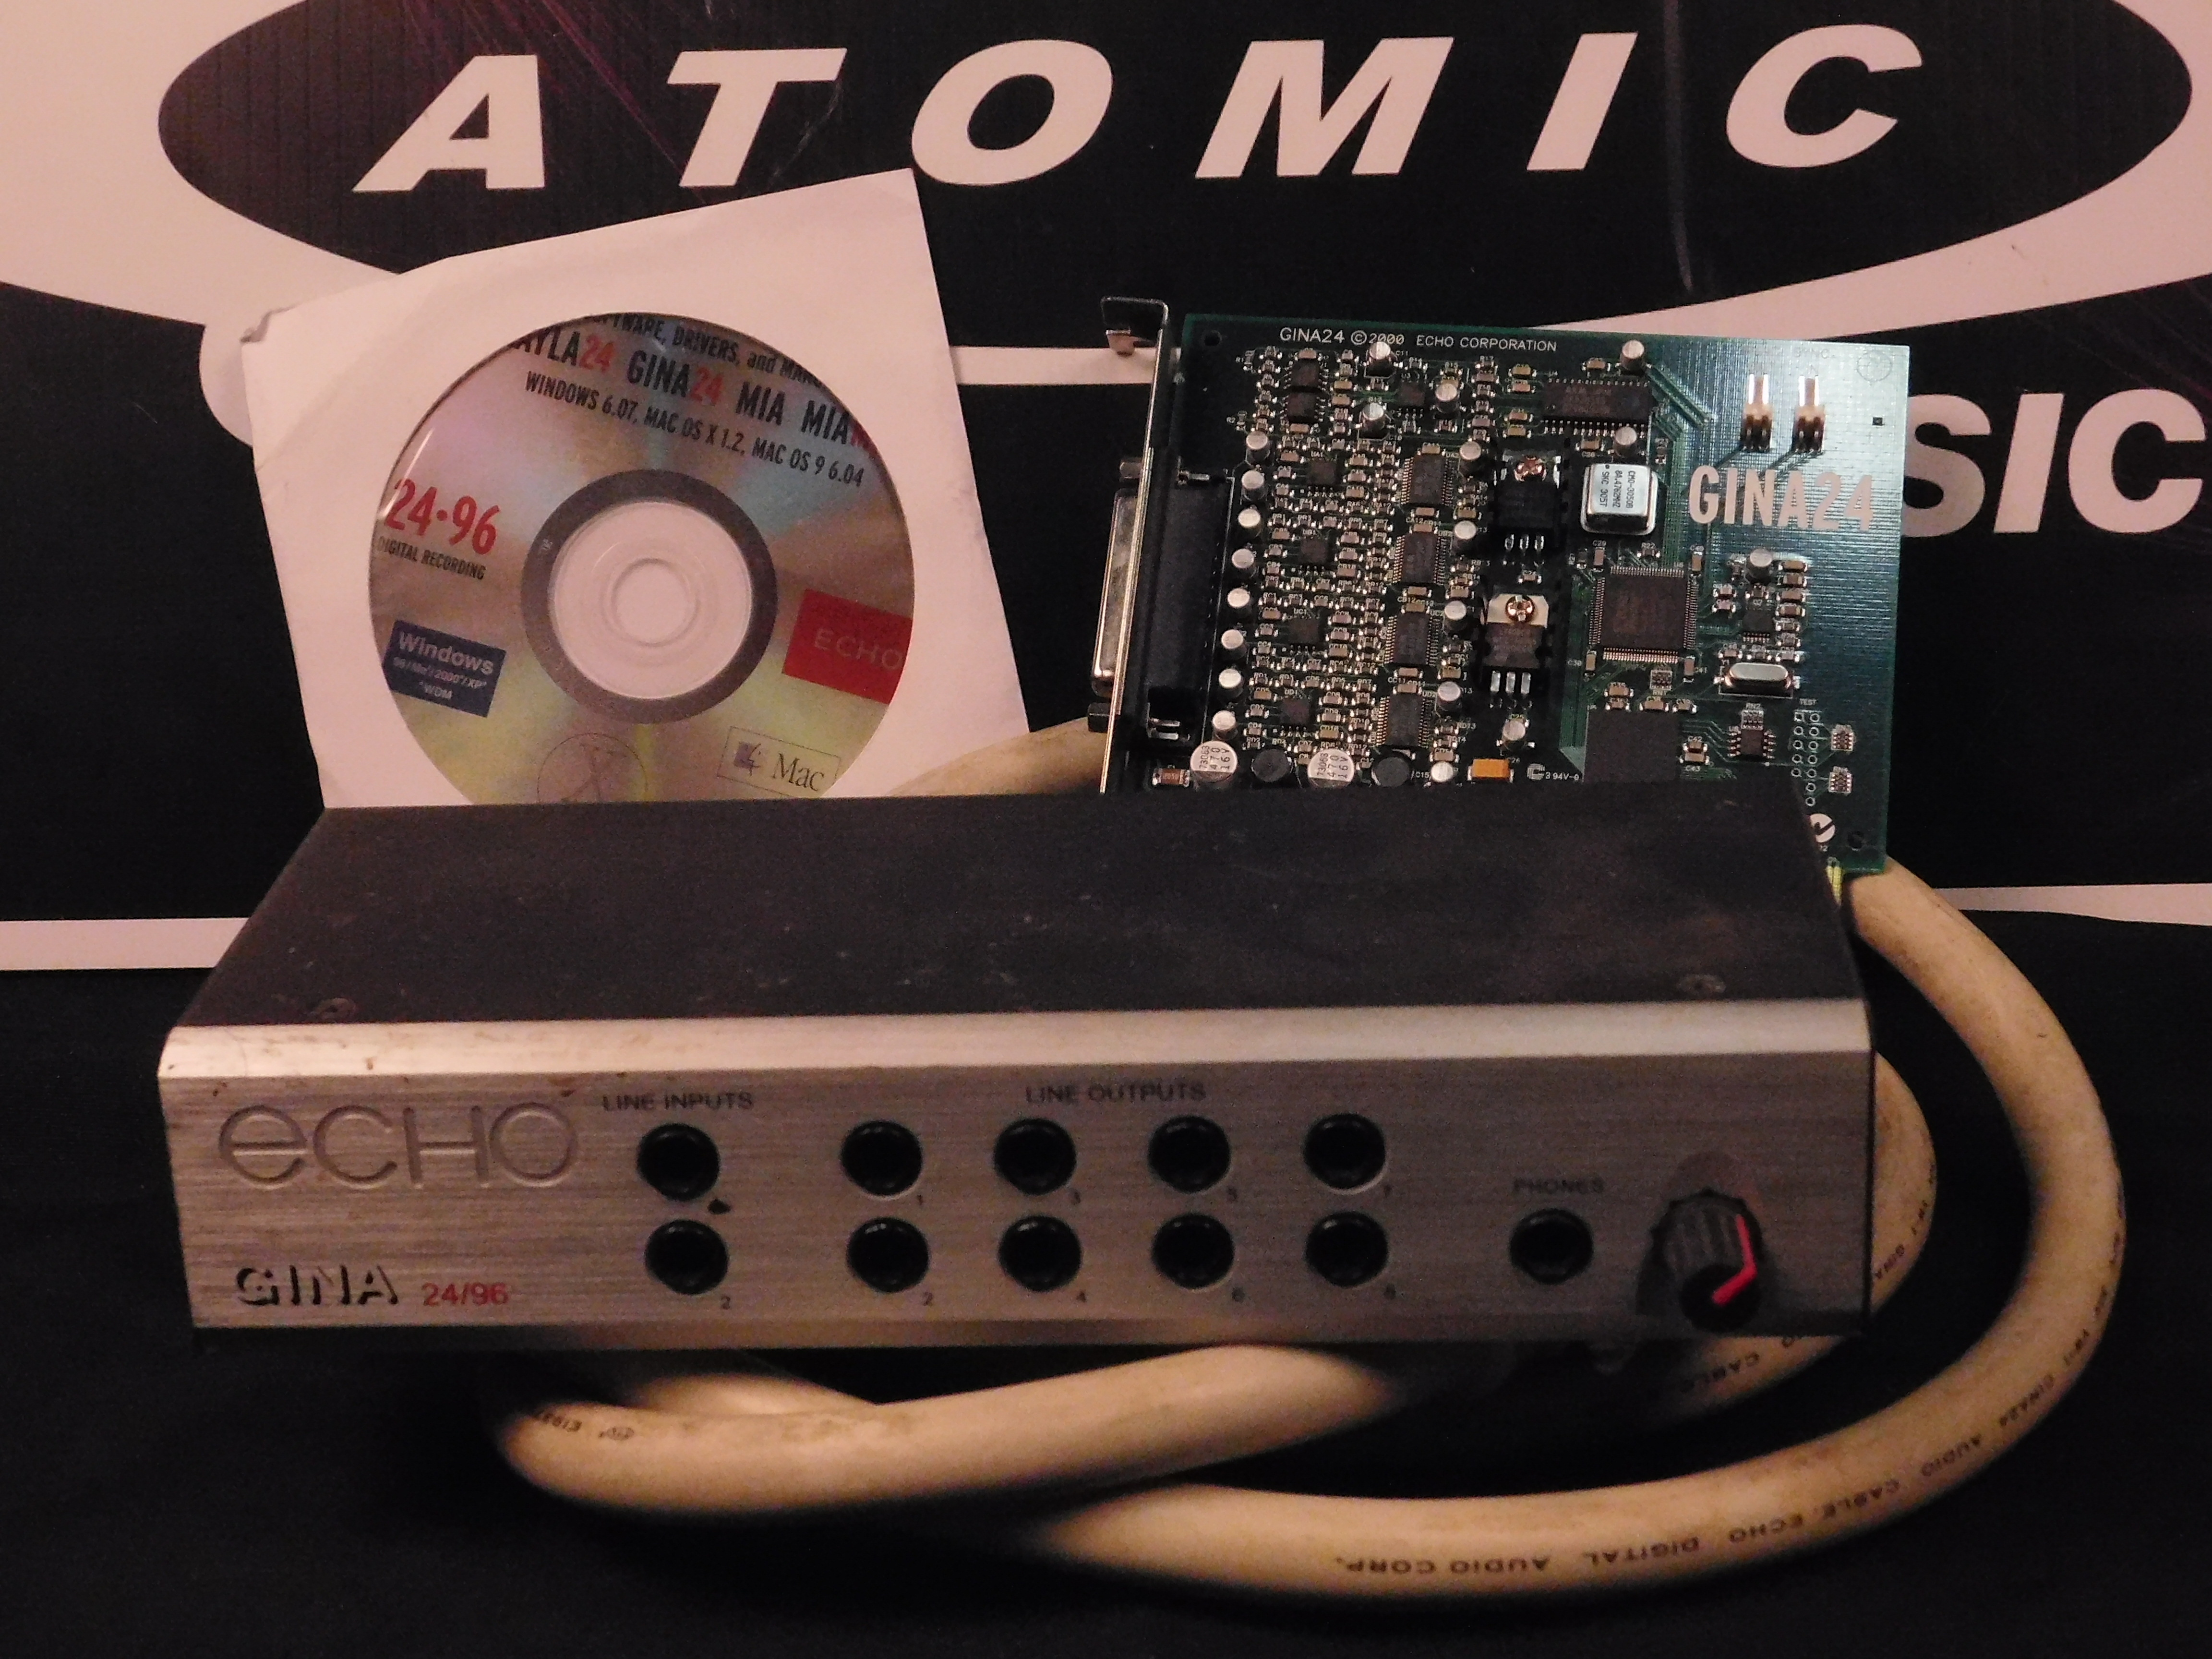 ECHO GINA 24/96 INTERFACE w/Cable, CD & PCI Card  **AS IS**